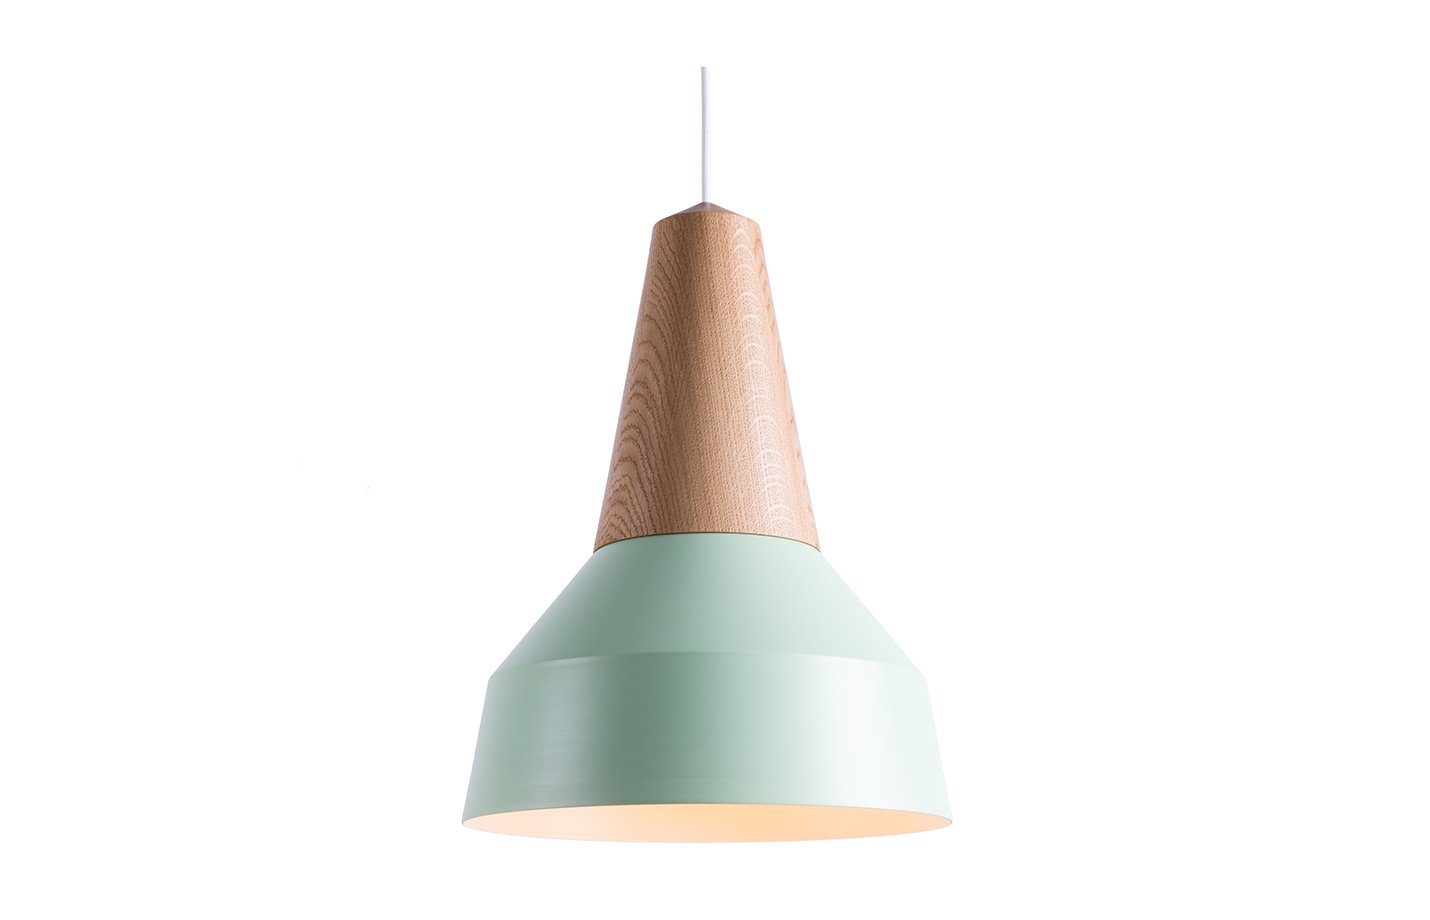 Eikon basic pendant lamp oak-mint